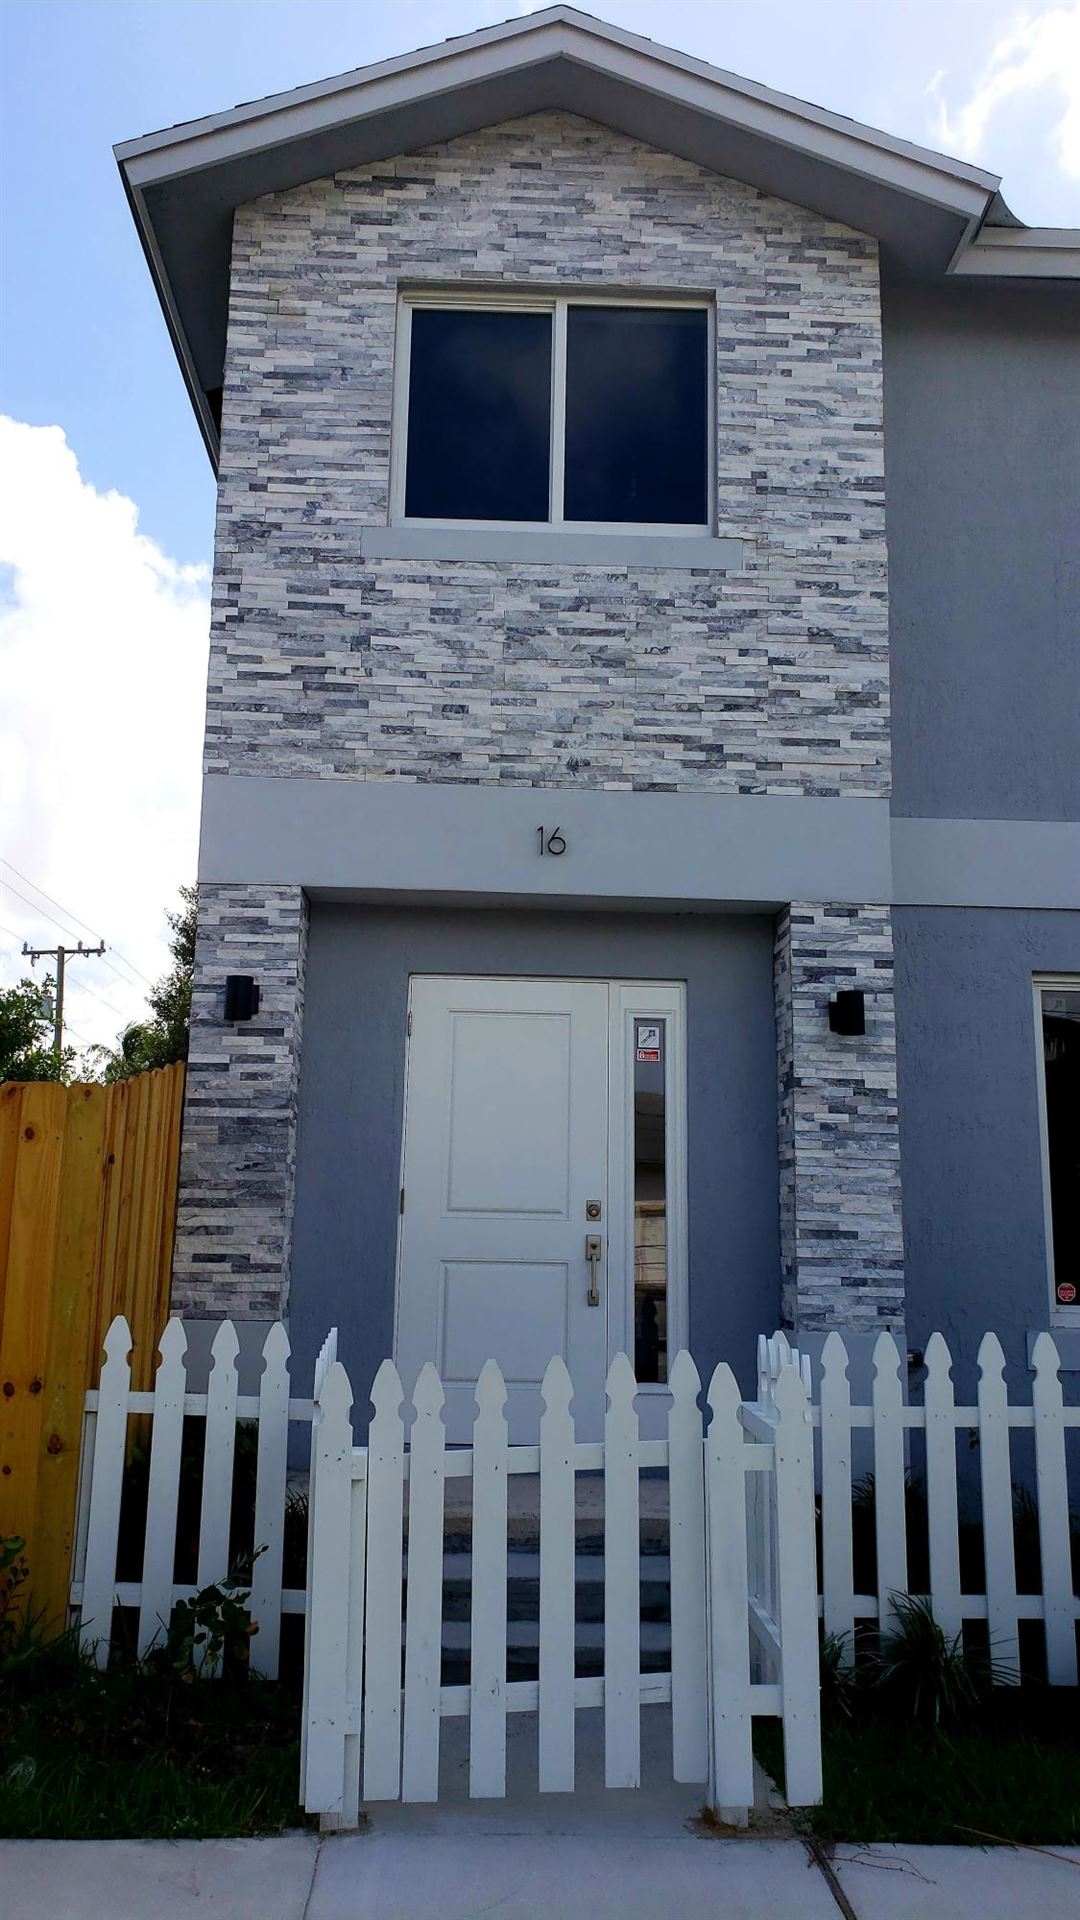 16 NW 11th Street, Fort Lauderdale, FL 33311 - #: RX-10682651